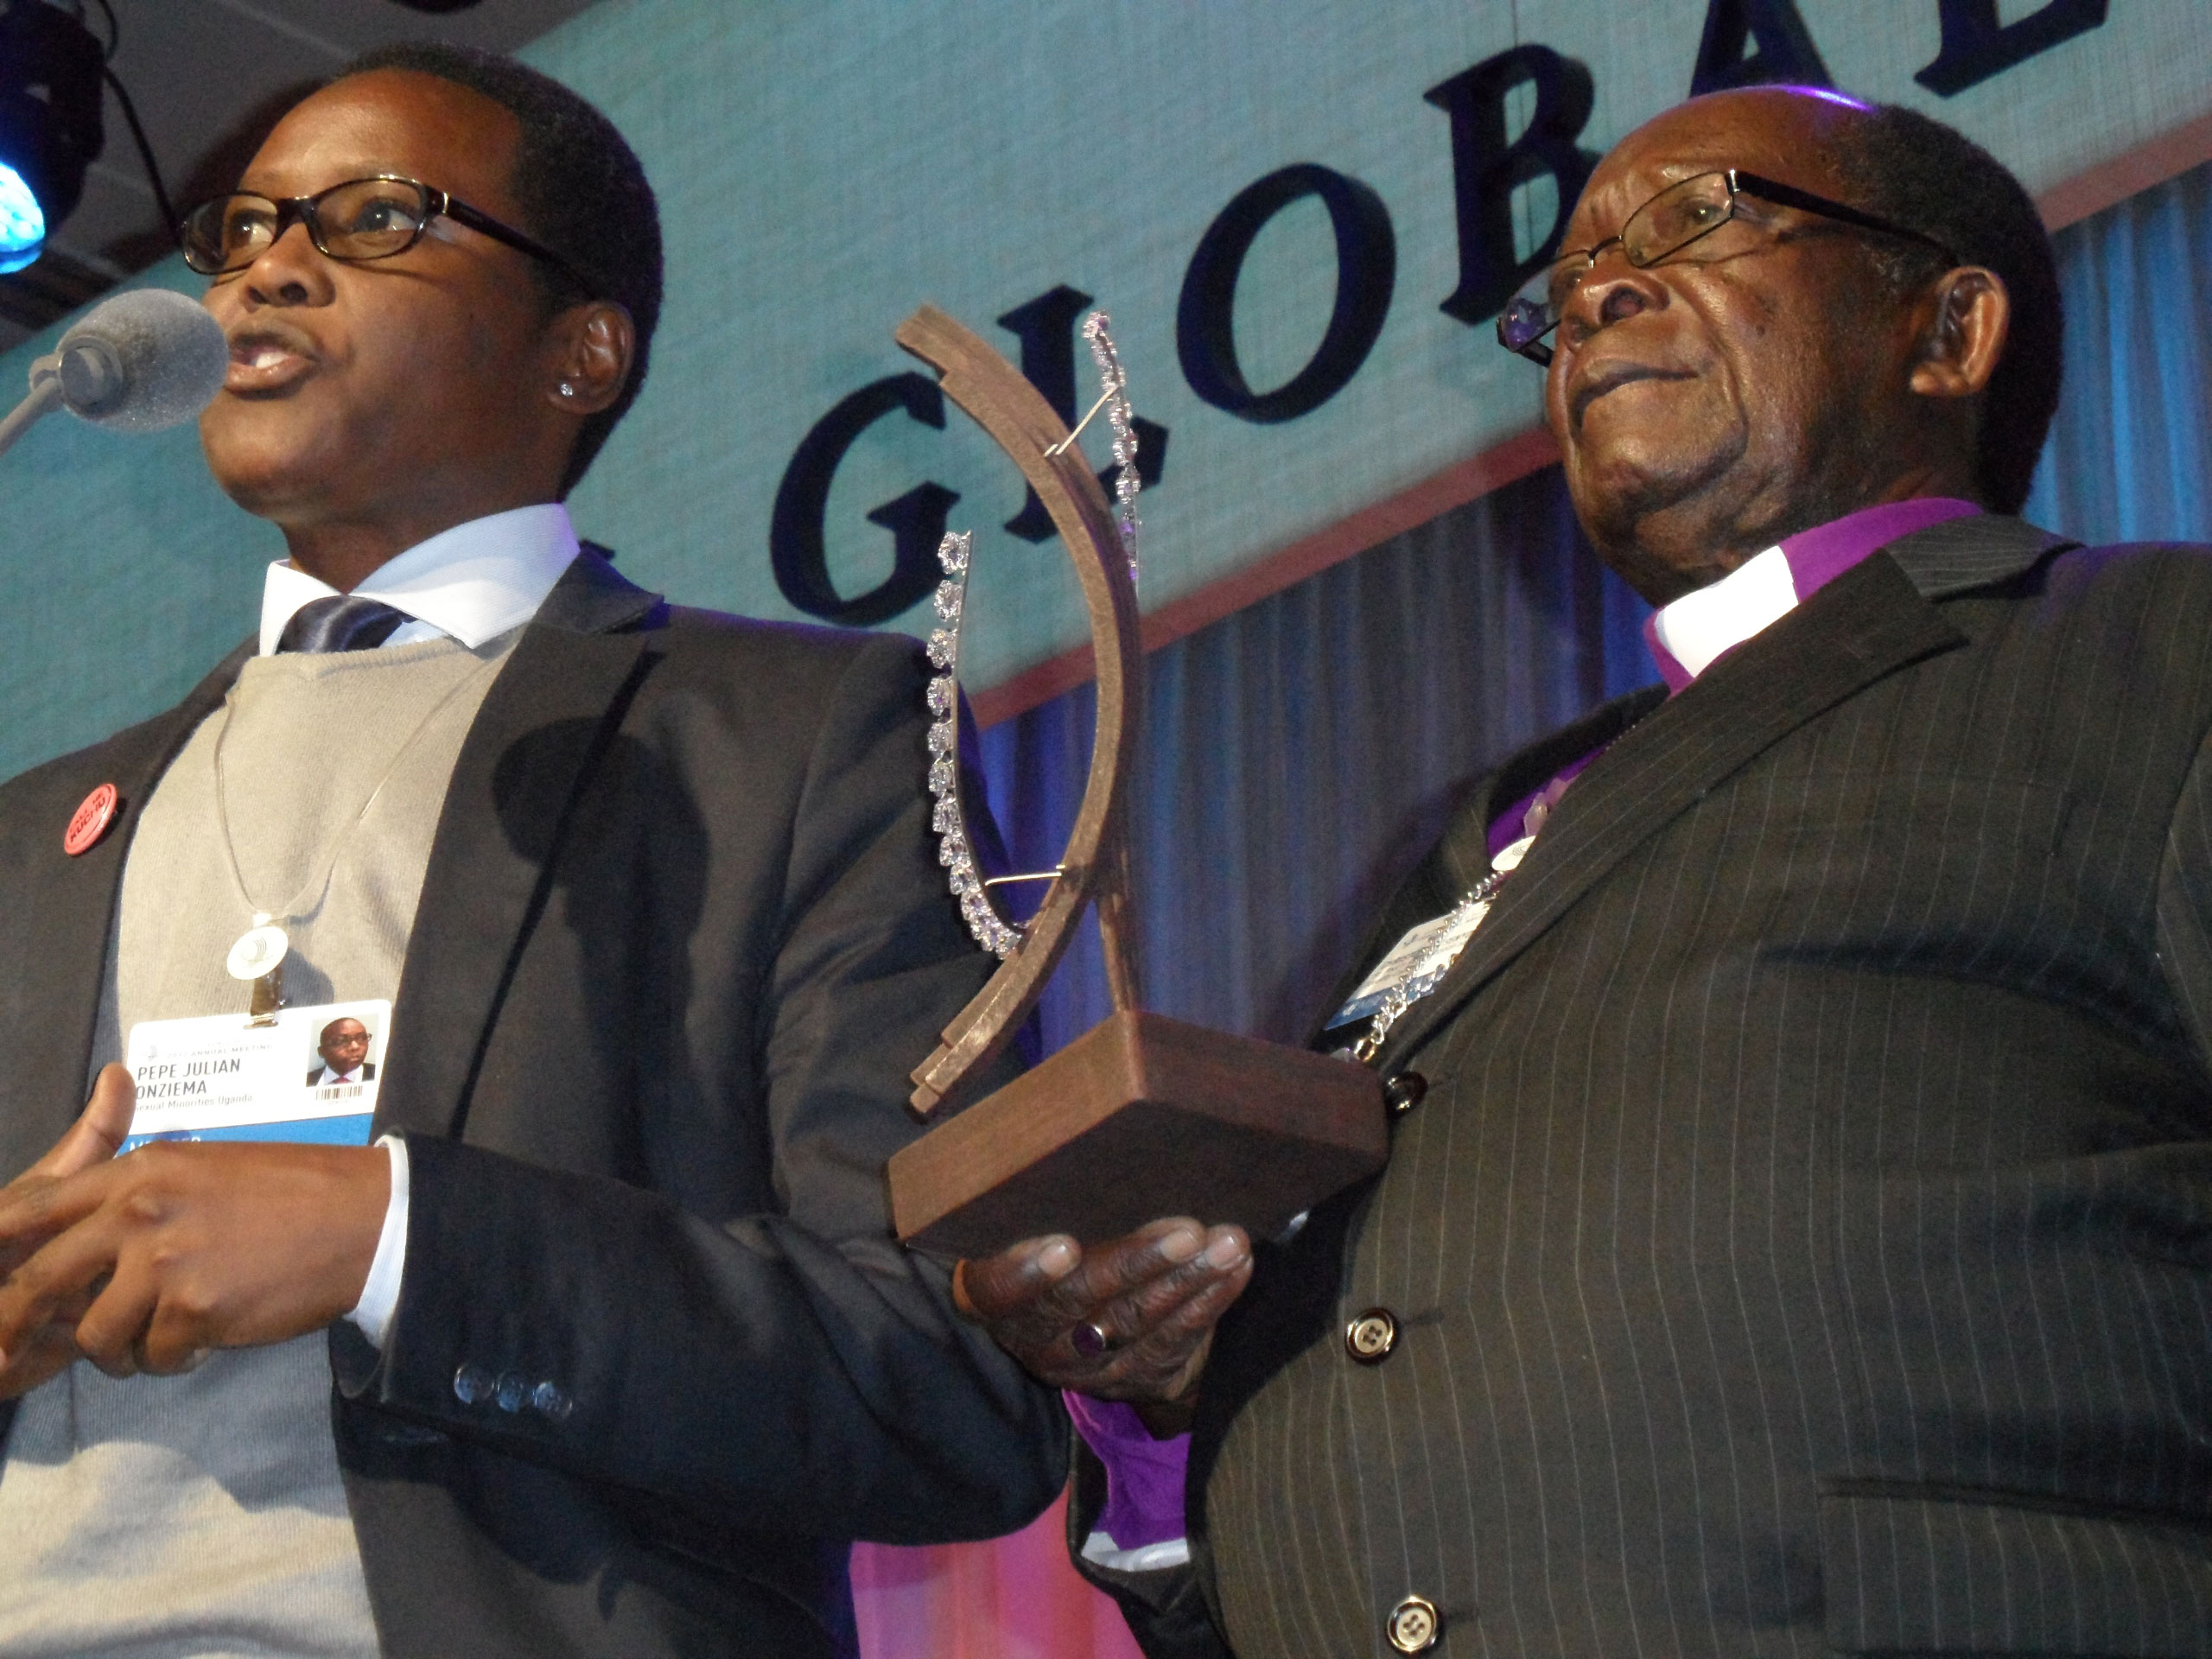 Clinton Global Citizen award winners Pepe Julius Onziema, left, and Bishop Christopher Senyonjo at Clinton Global Initiative 2012 in New York. at